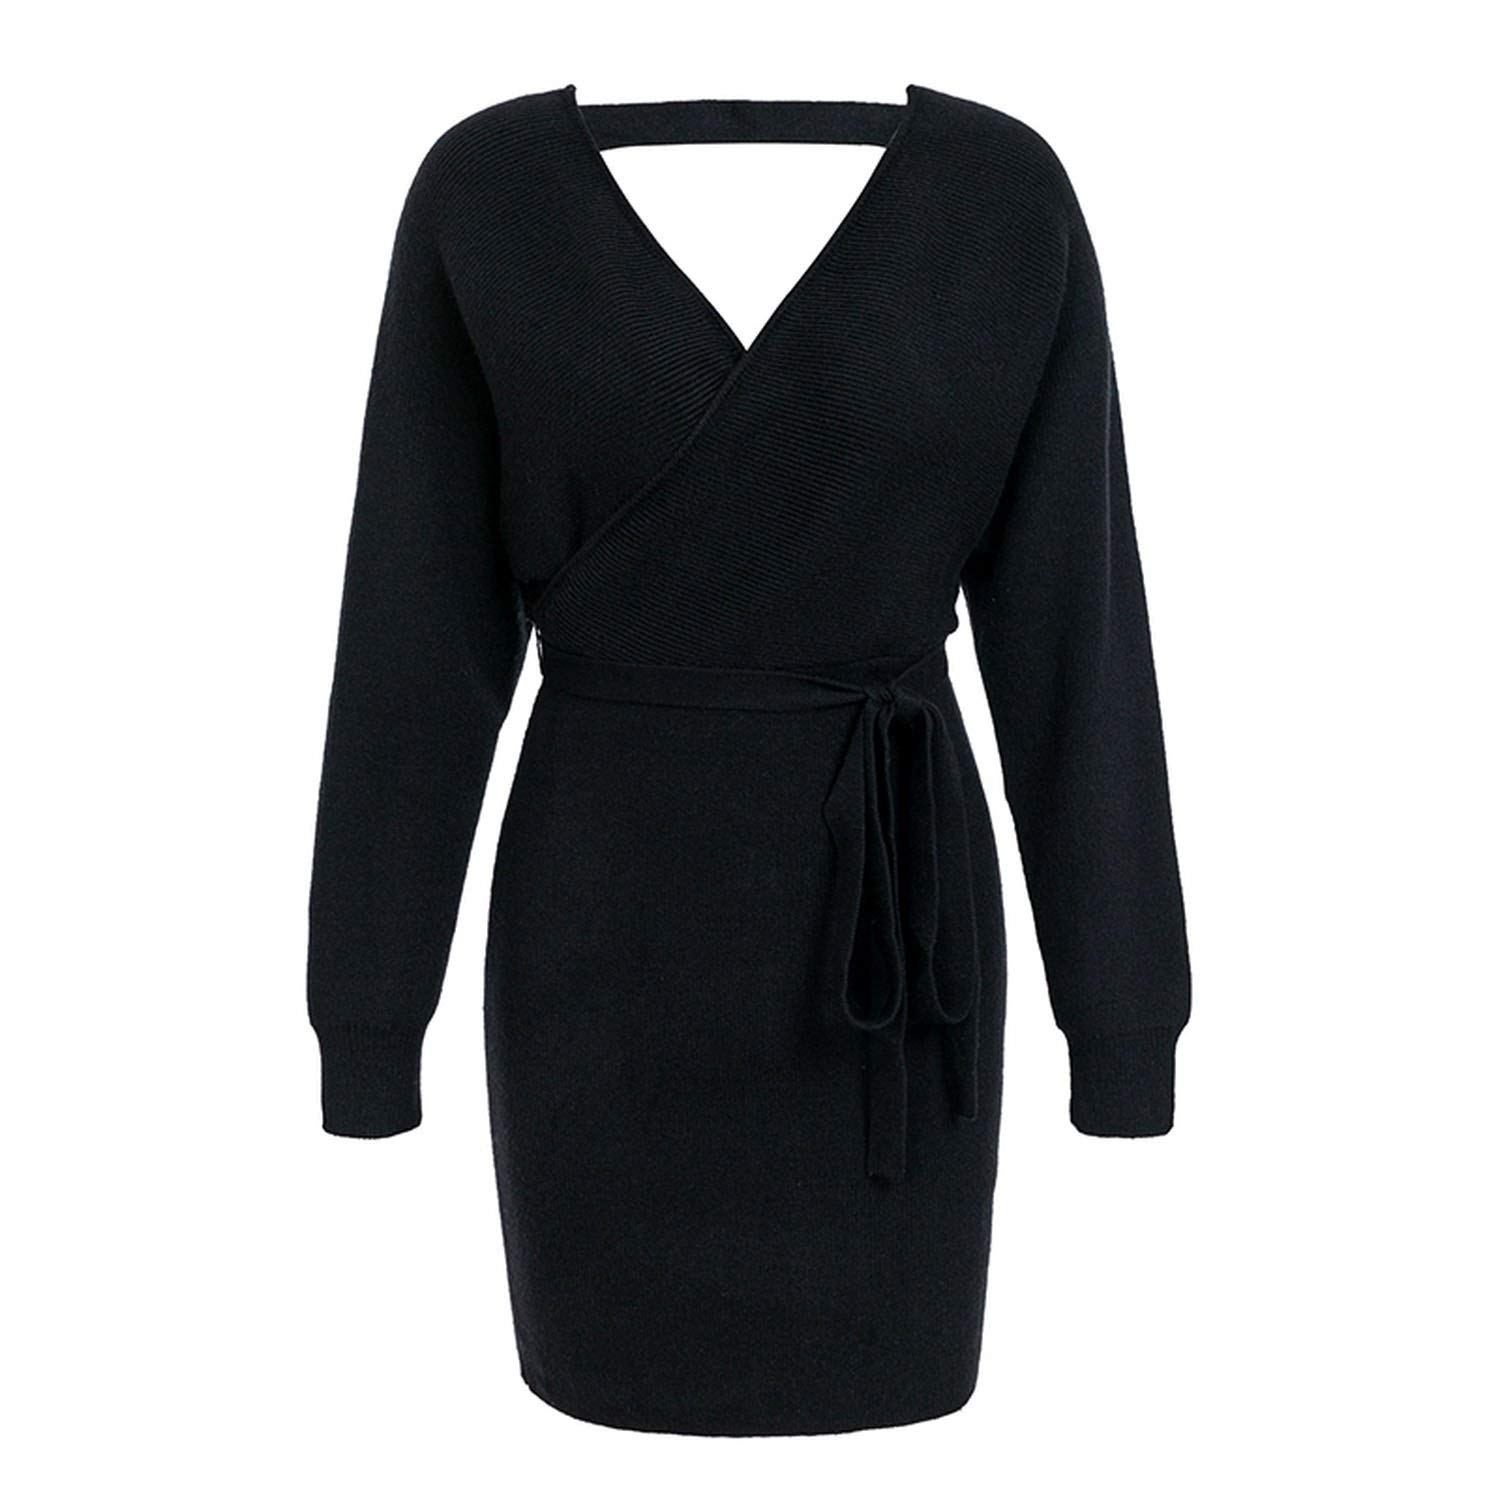 Black MTStyle V Neck Knitted Warp Vintage Long Sleeve Winter Hollow Out Belt Bodycon Dress Sexy